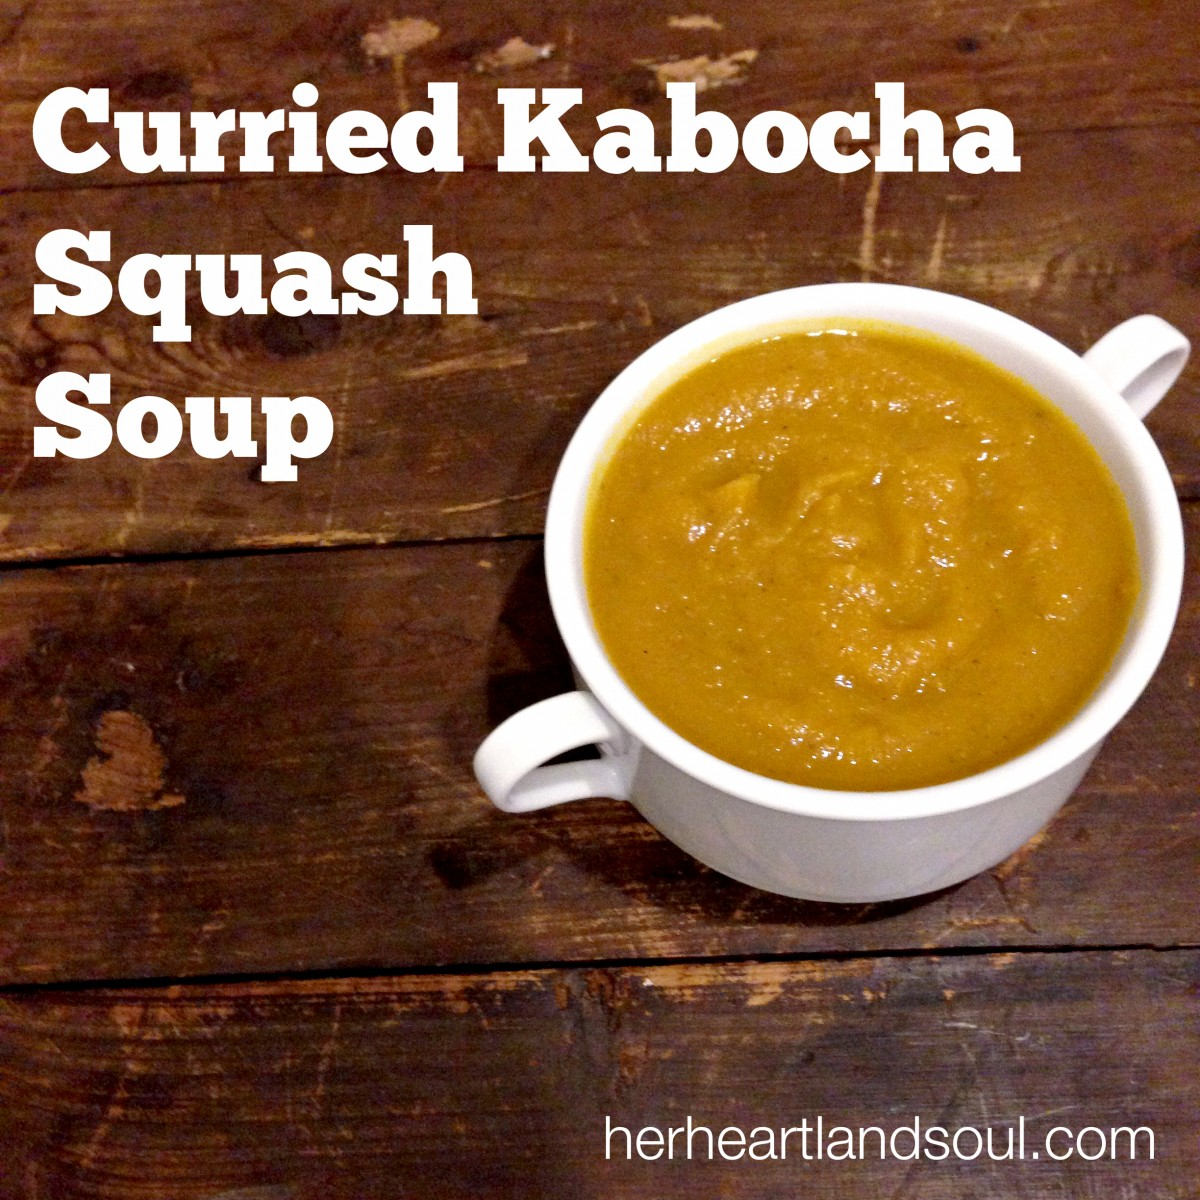 curried kabocha squash soup recipe Erin Fairchild Her Heartland Soul